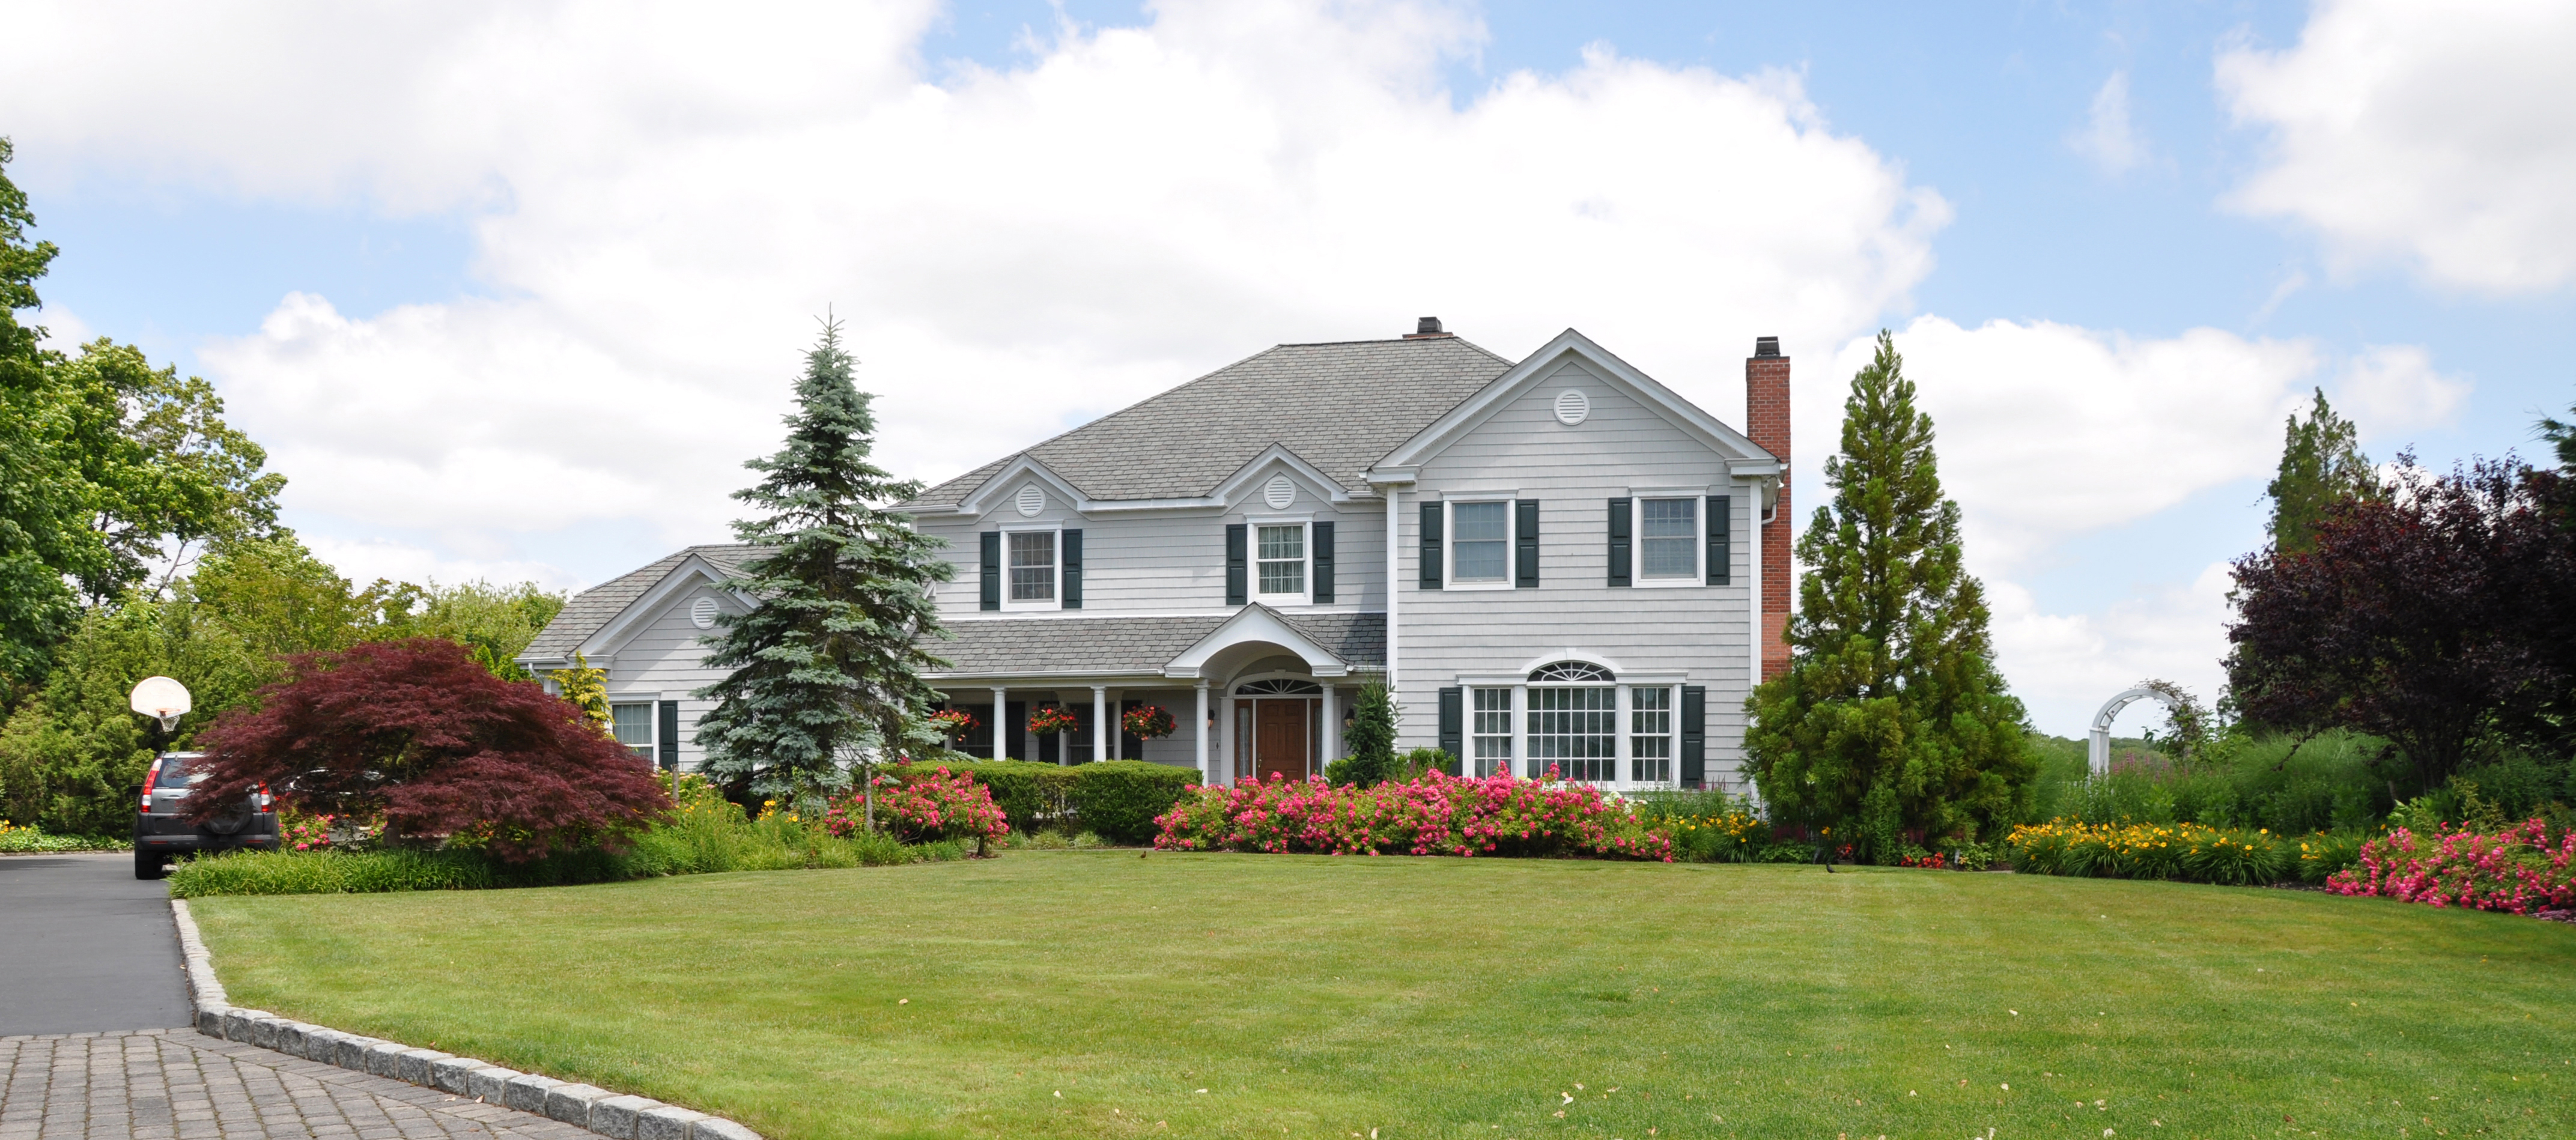 how to find a mortgage lender